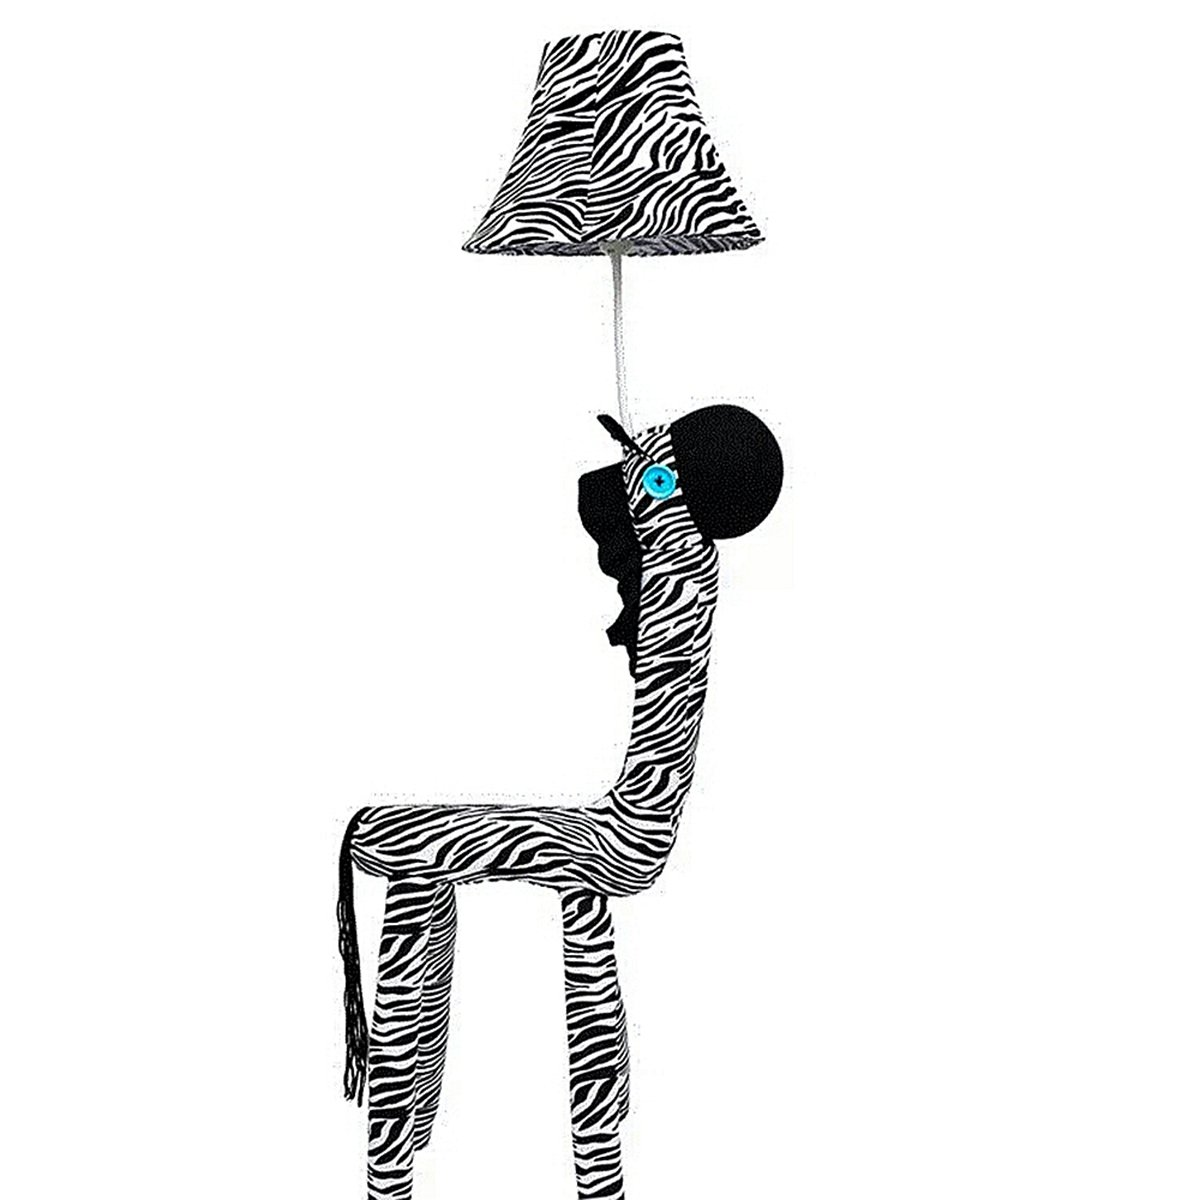 Coolfire Kids Handmade Decorative Floor Lamp Bedside Table Lamp Night Light for Bedroom Living Room Playroom (Floor Lamp, Zebra)